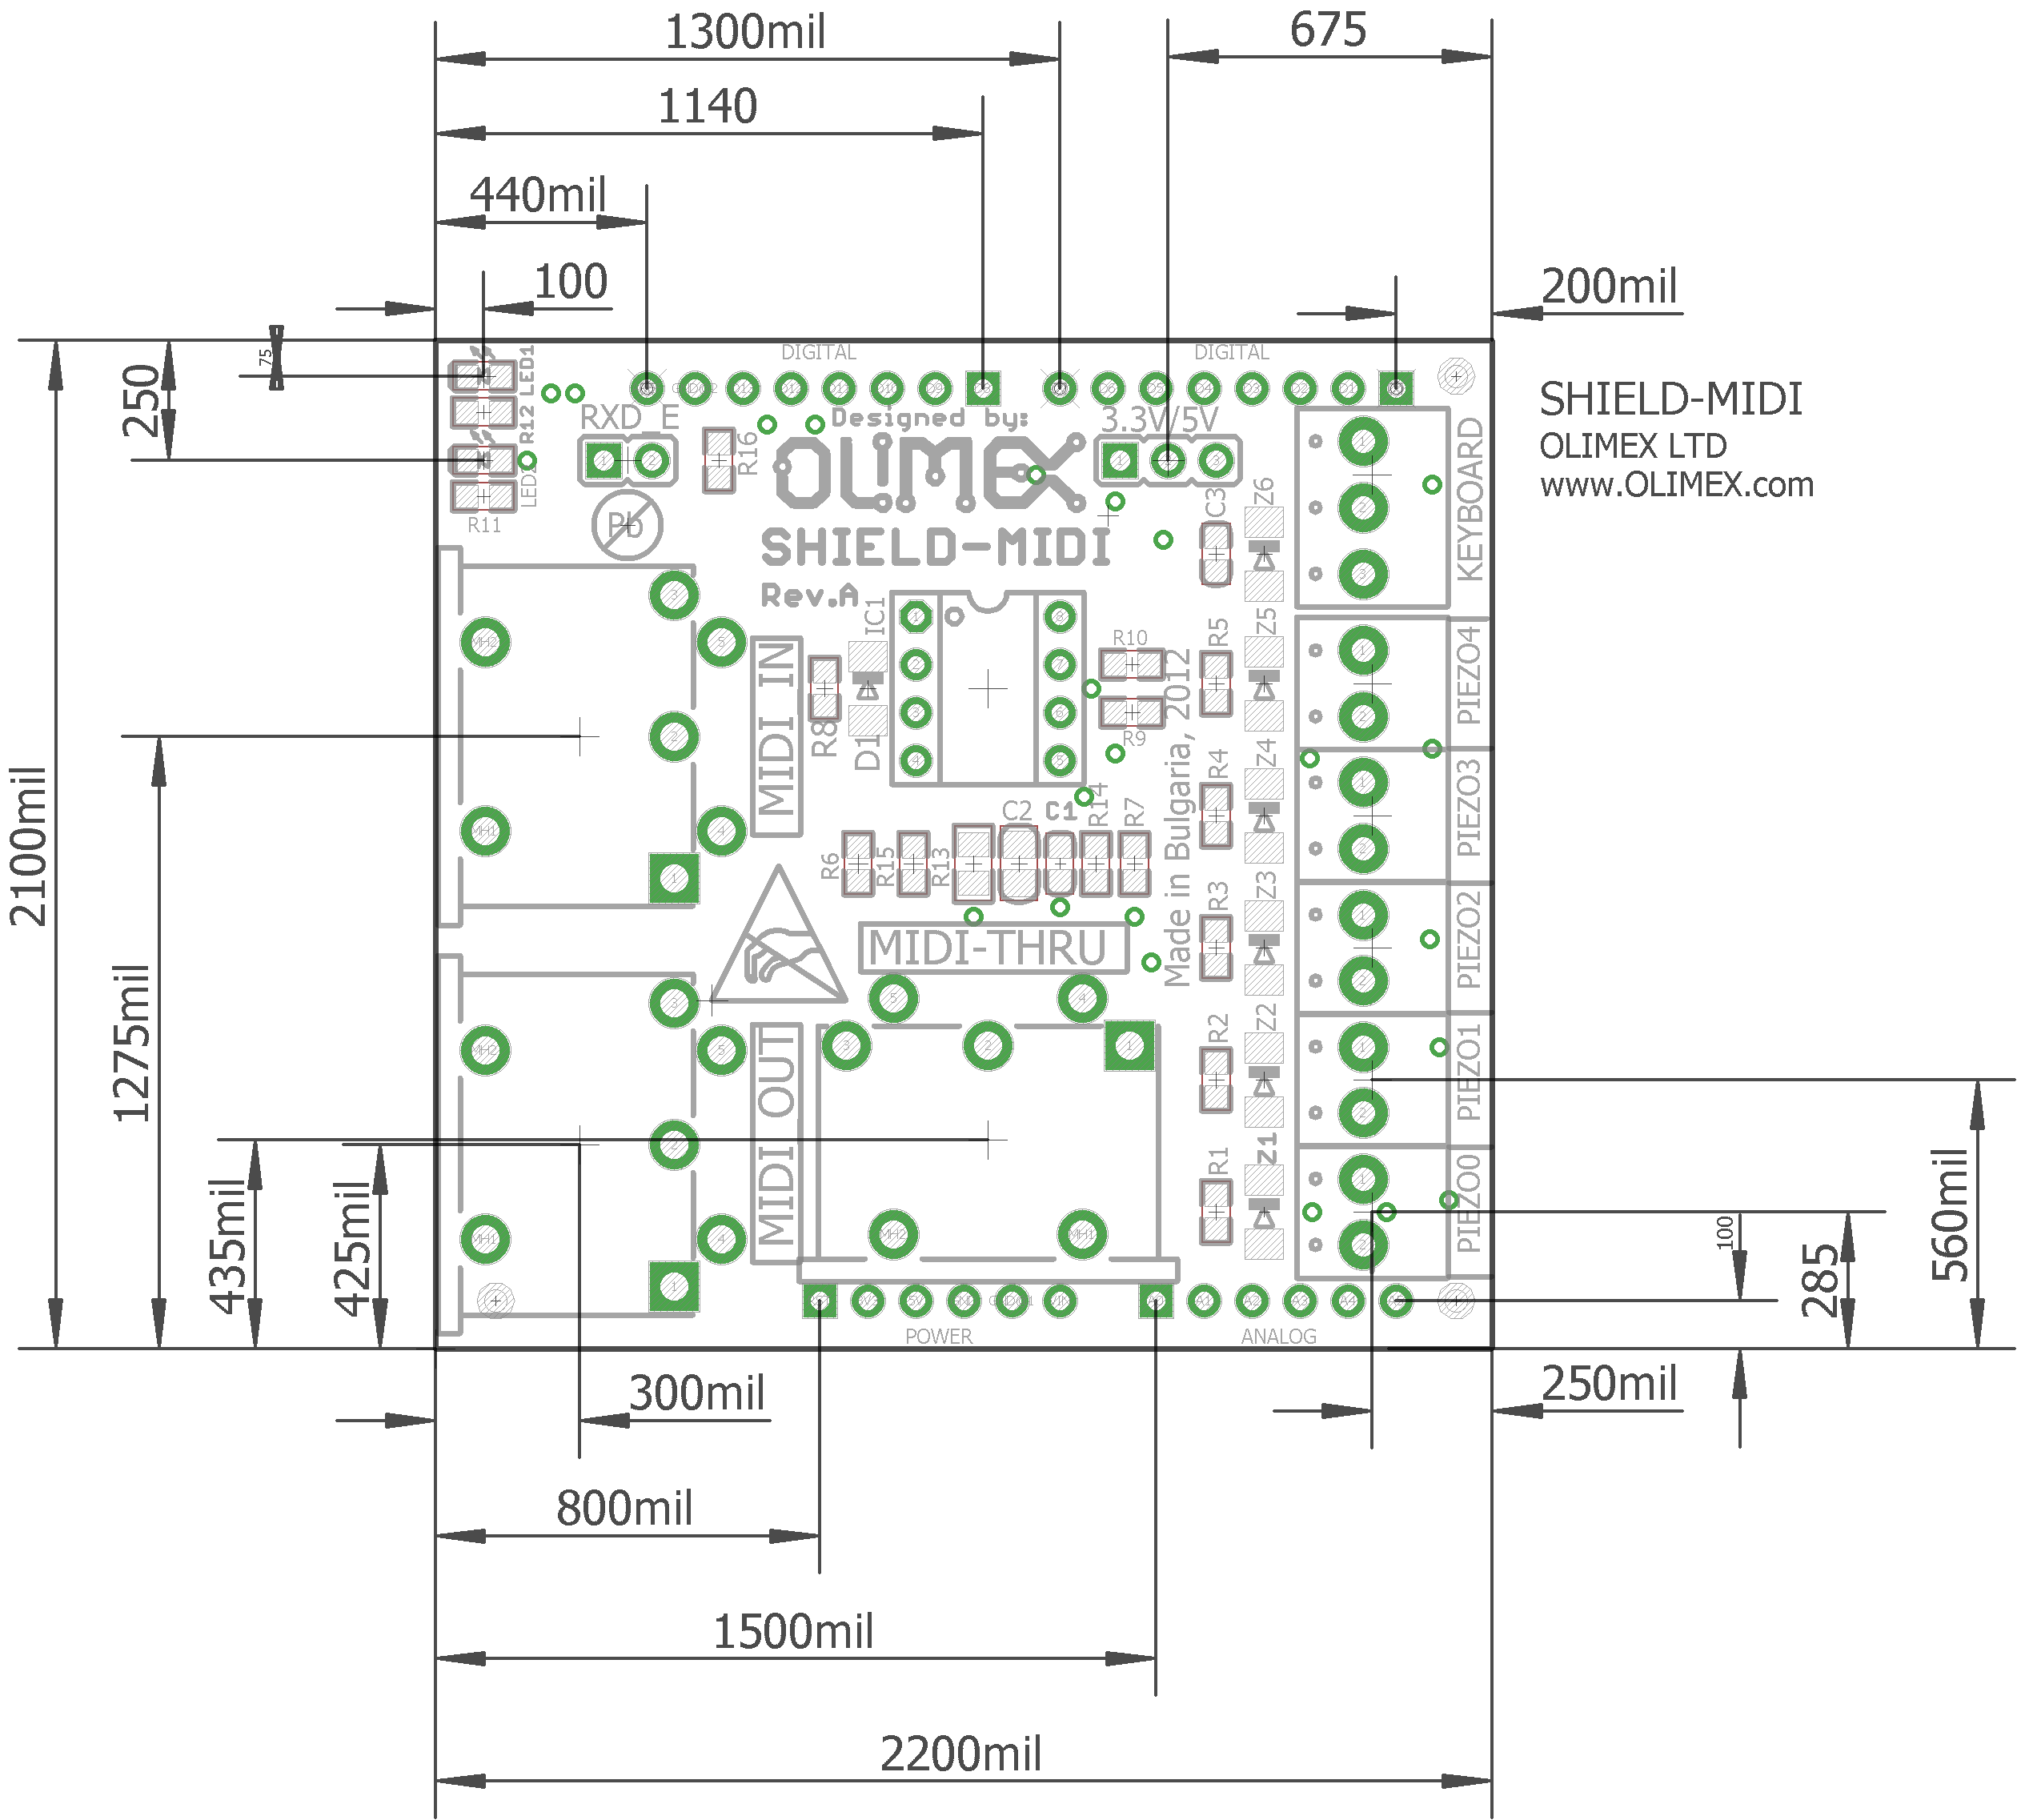 Awesome Emg Schematic Sketch - Best Images for wiring diagram ...